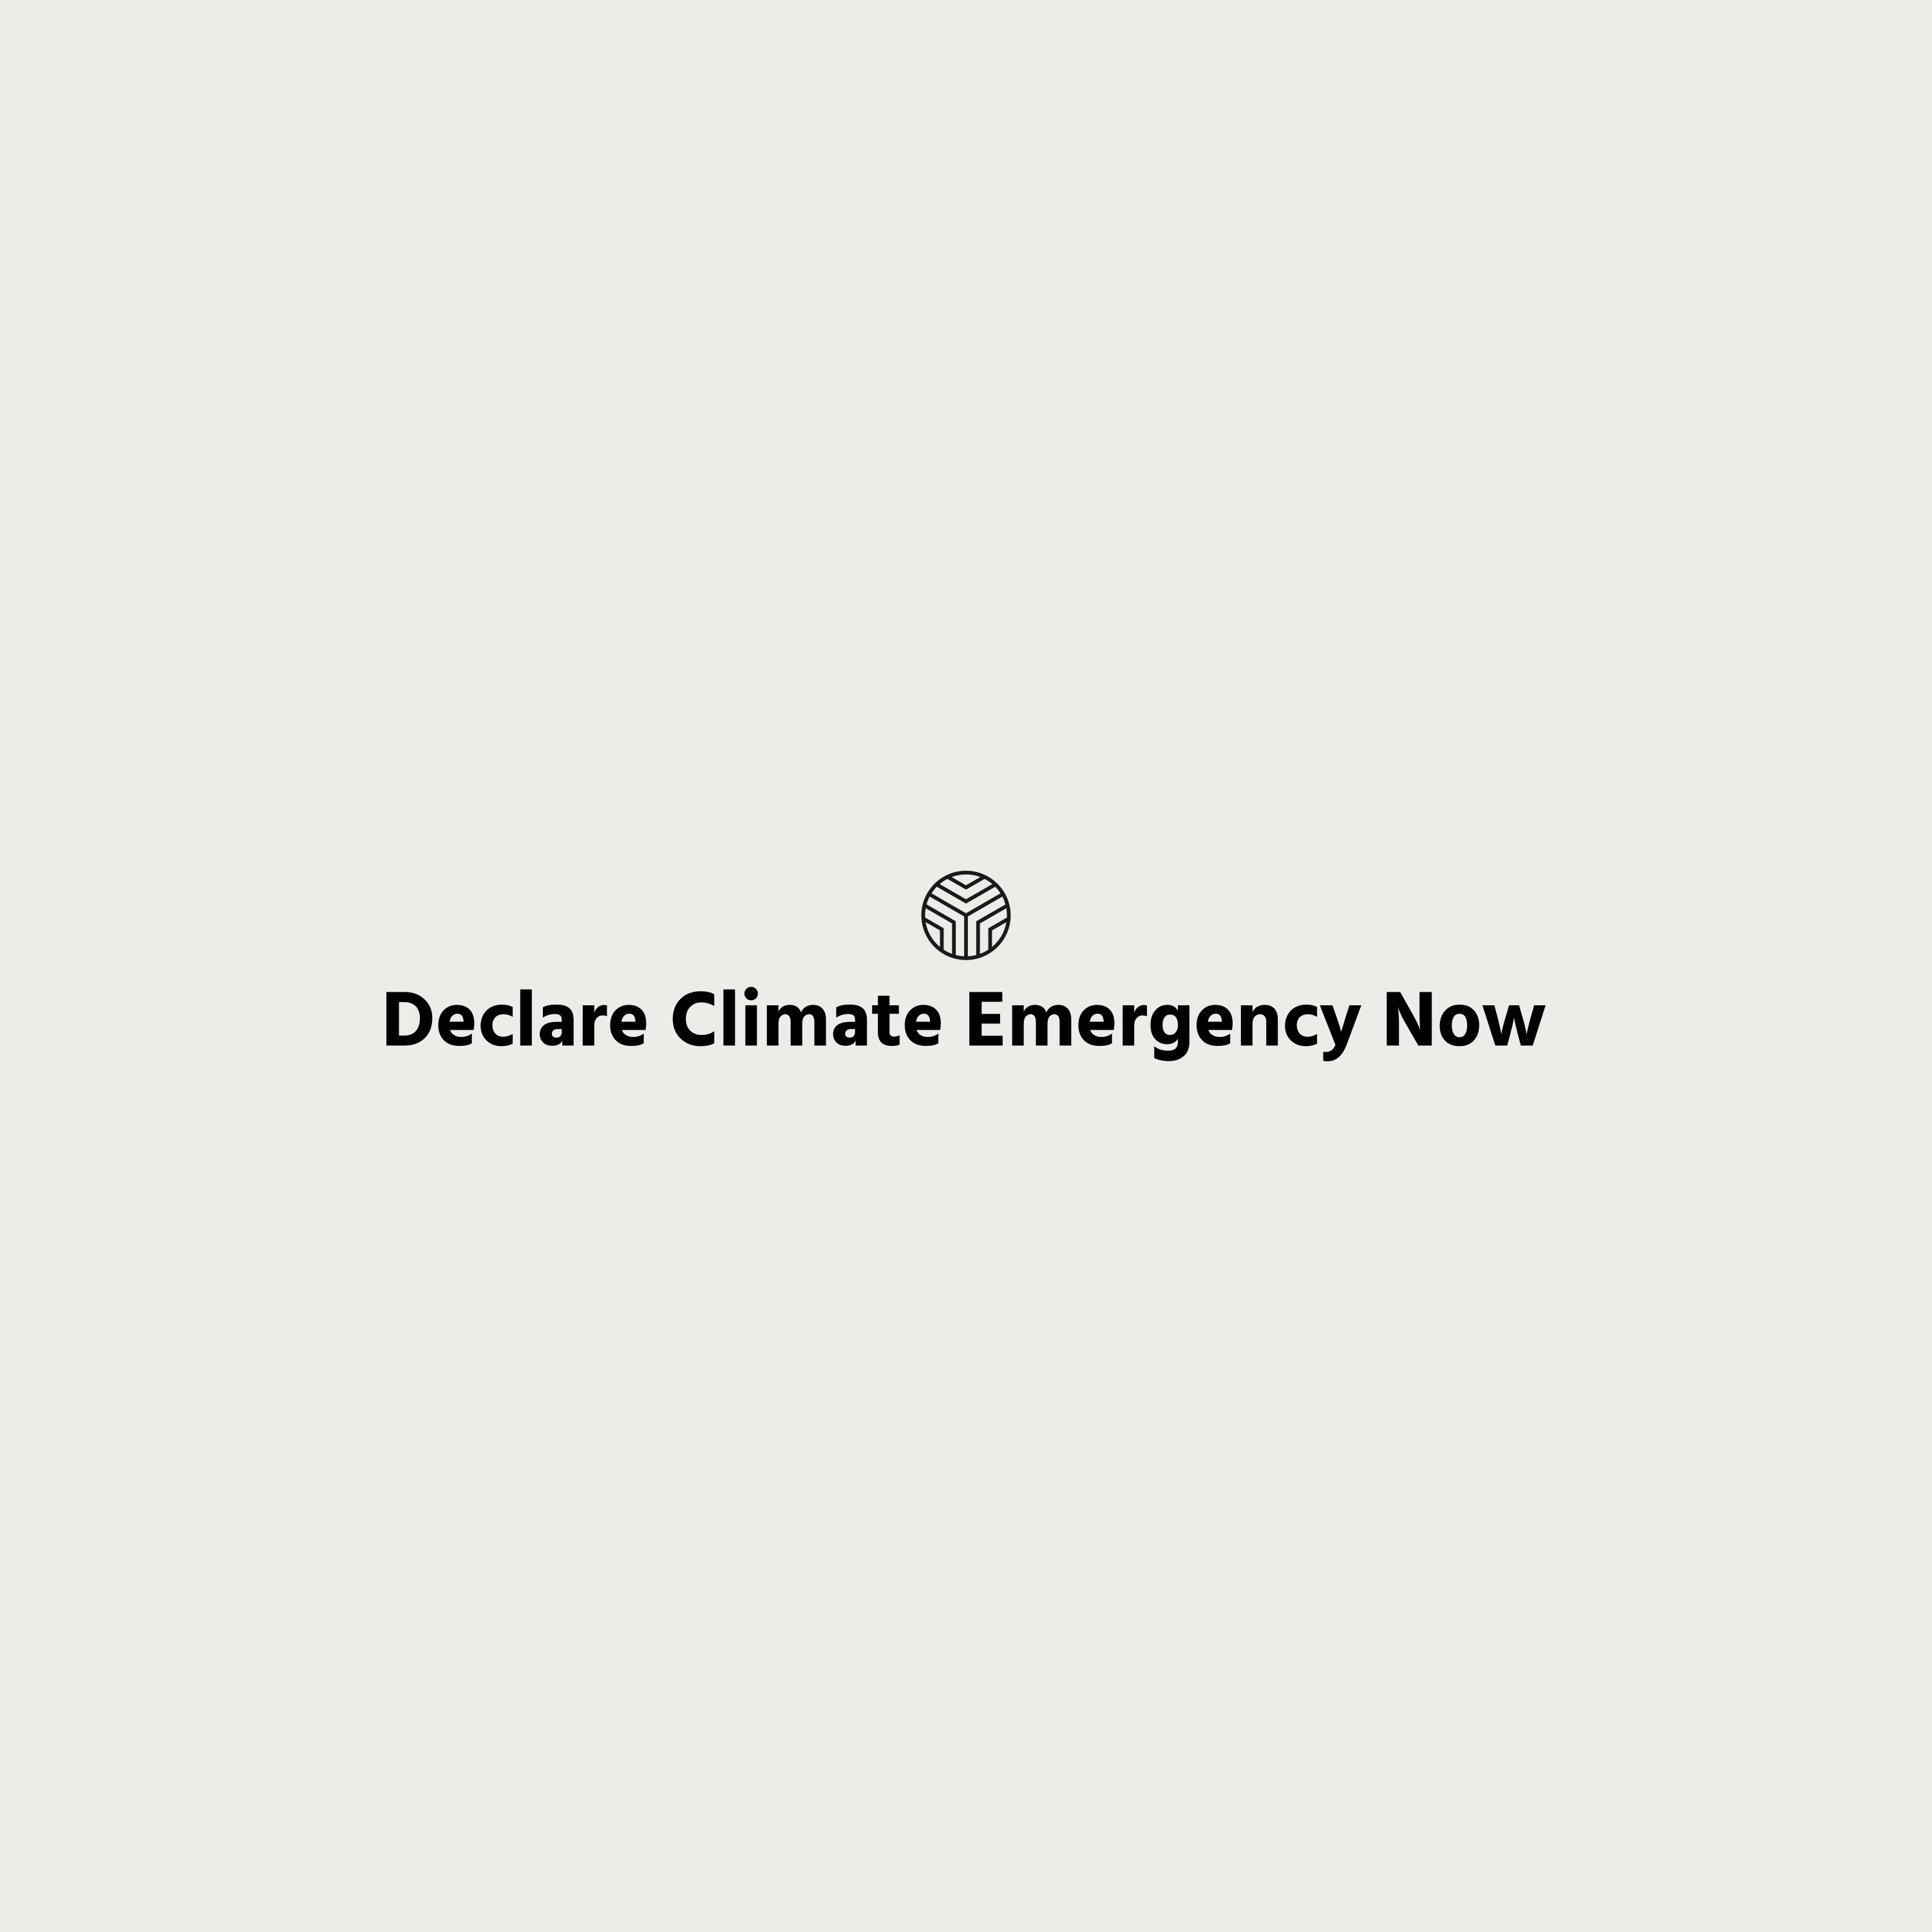 Declare Climate Emergency Now